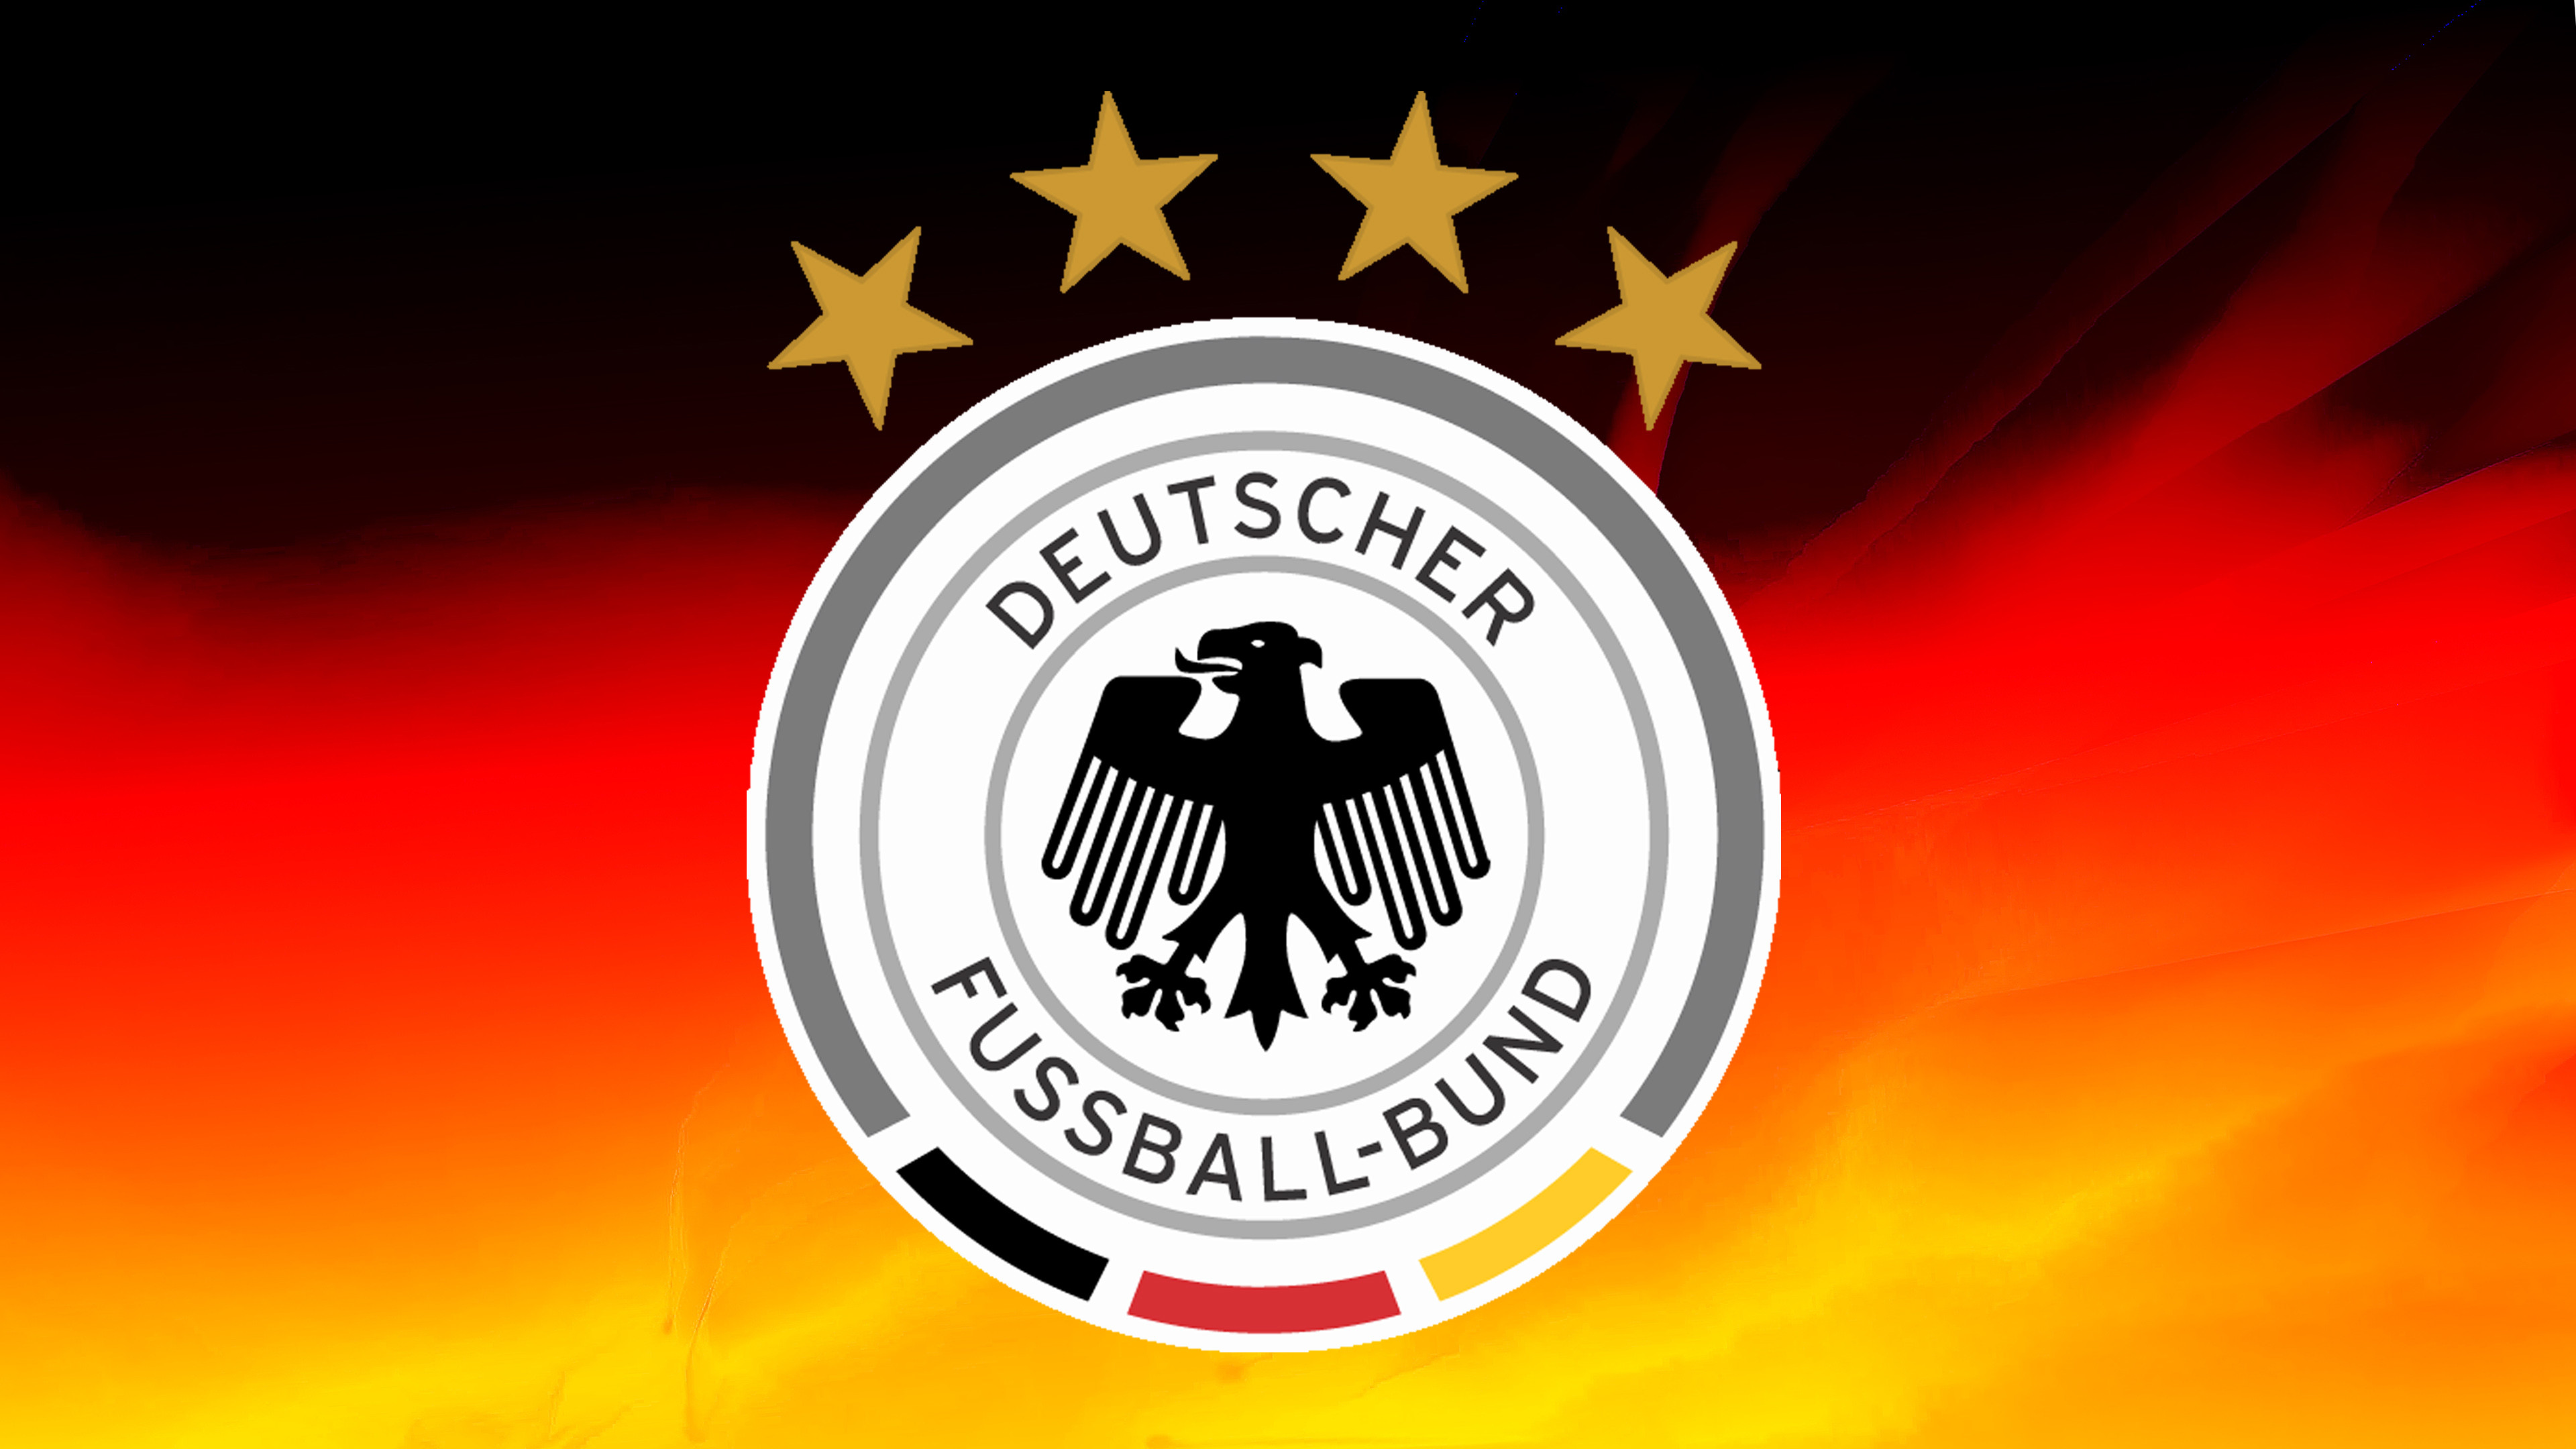 3840x2160 The Germany National Football Team Logo With Abstract Background A Wallpaper